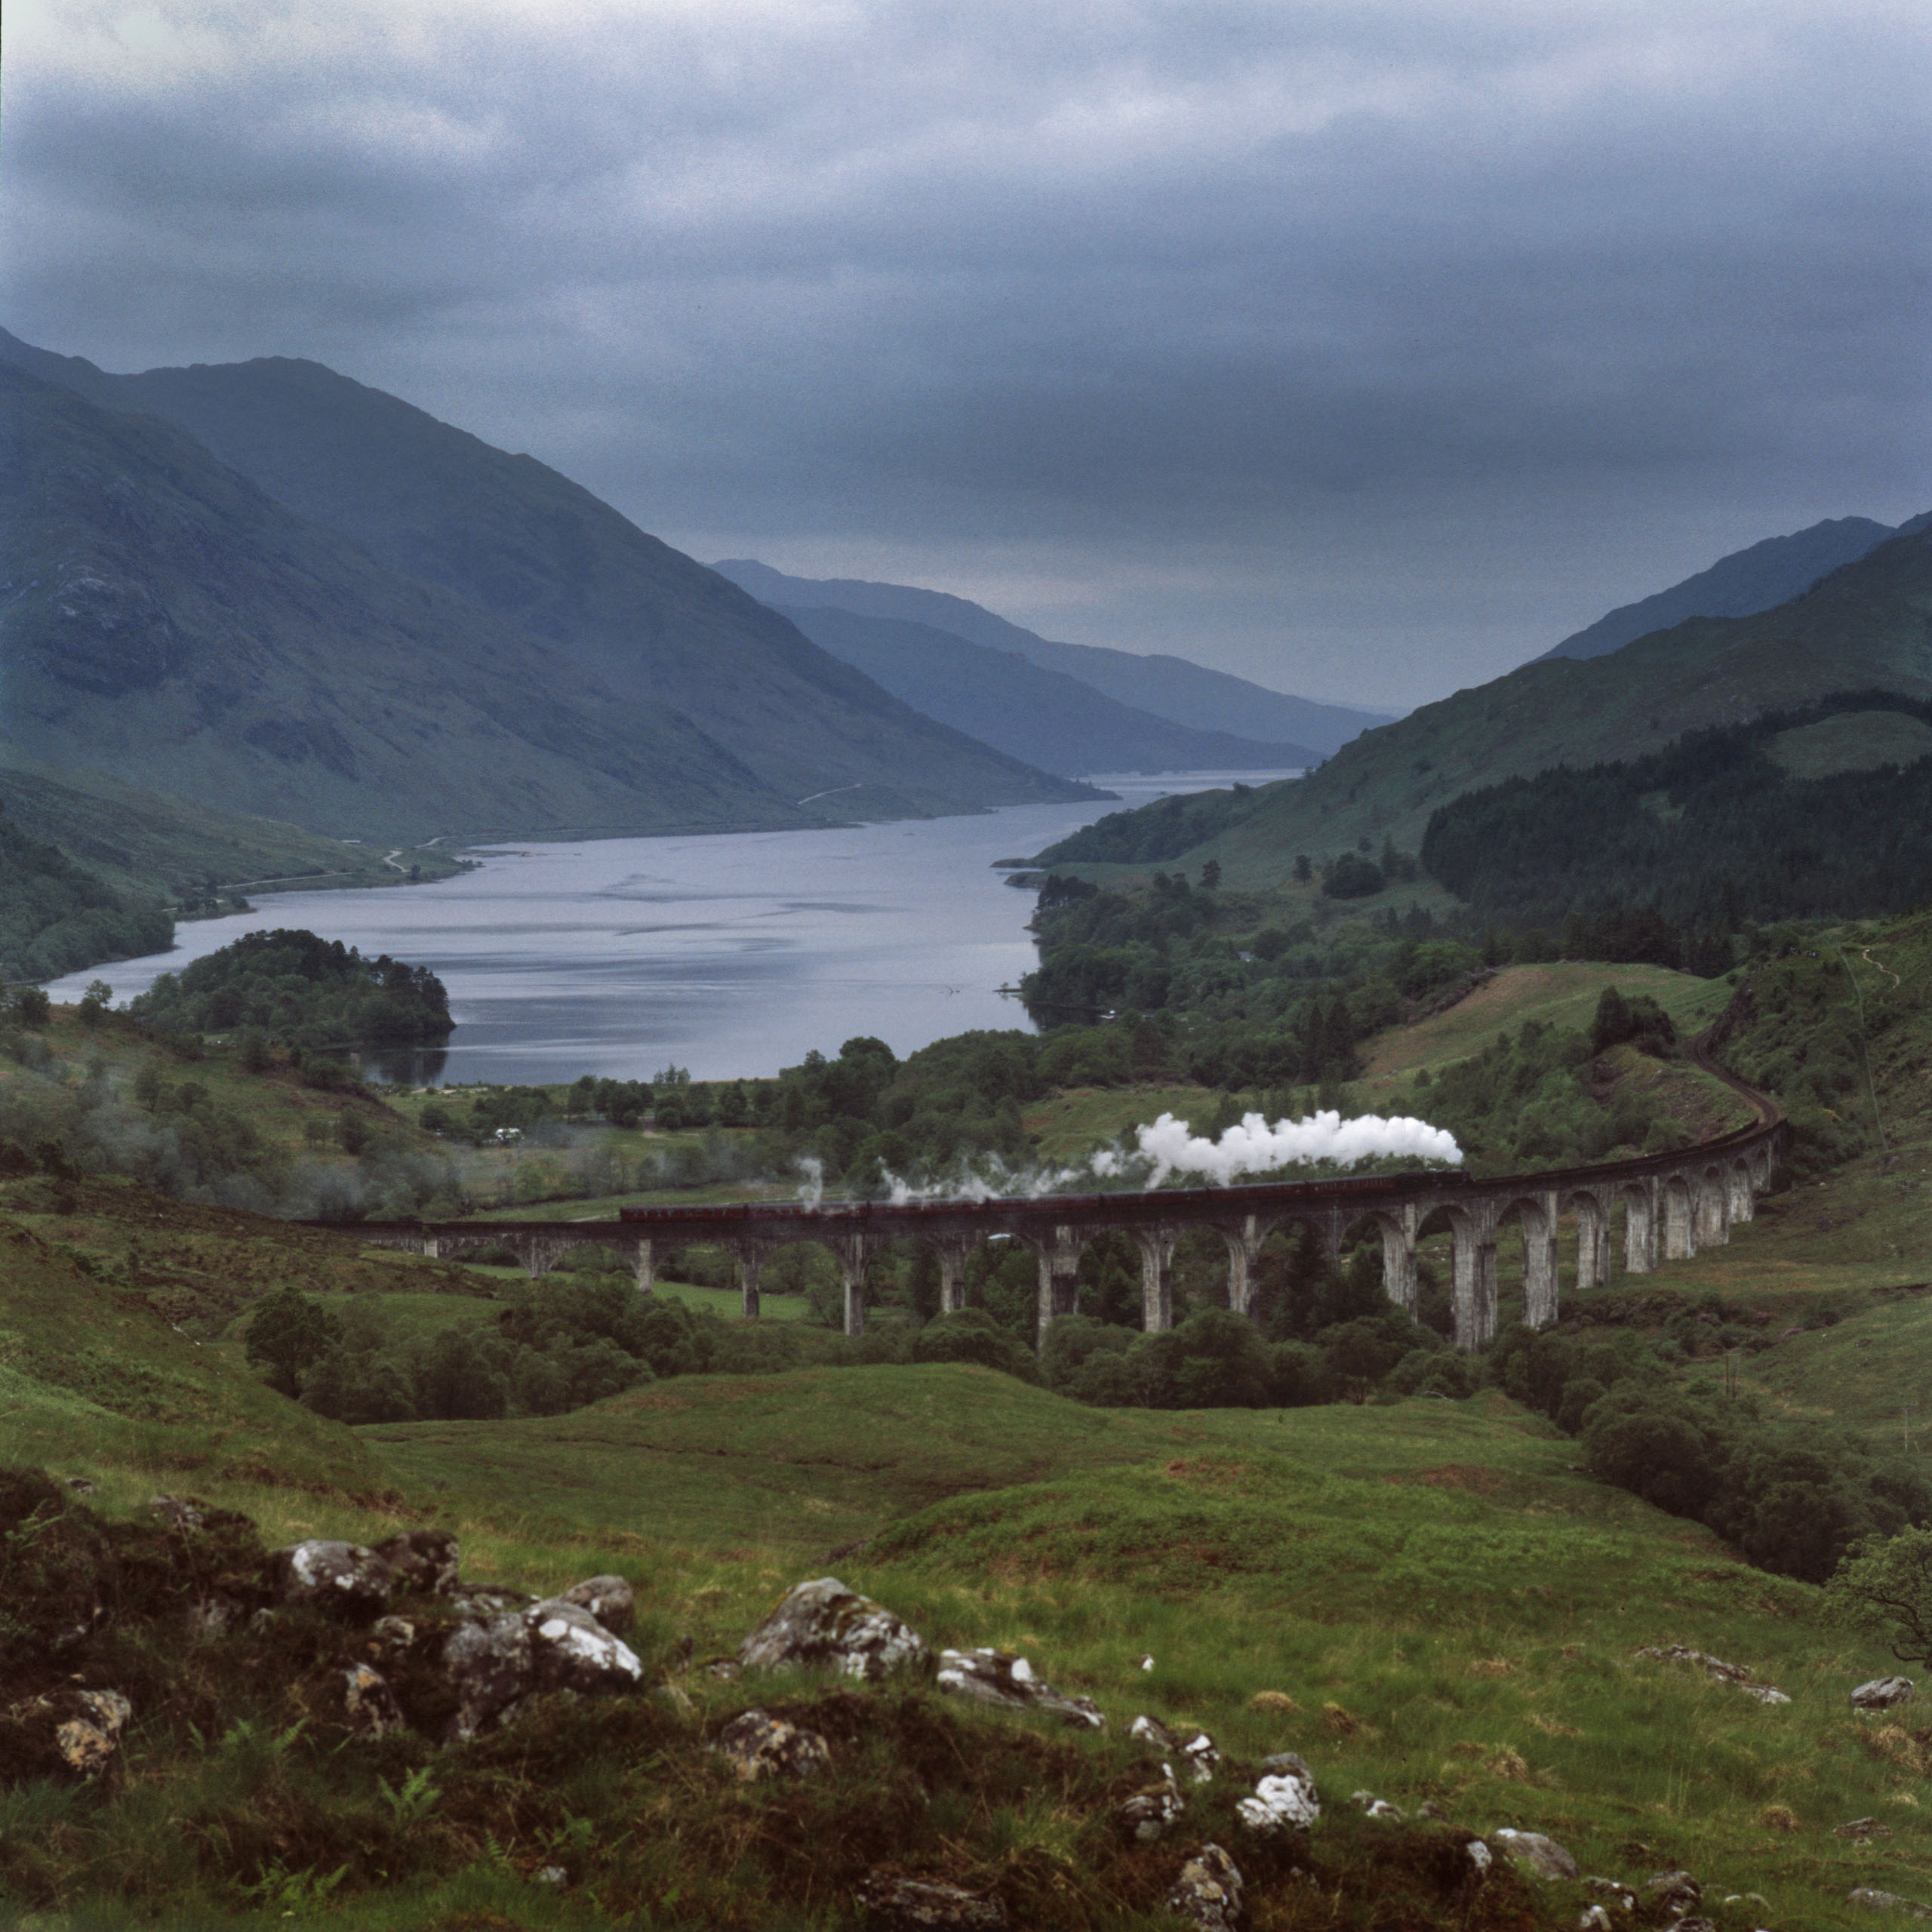 The Jacobite Express train crosses the Glenfinnan viaduct above Loch Shiel where Bonnie Prince Charlie raised the Jacobite standard to start his rebellion which ended in defeat at Culloden in 1745. The loss brought about the dismantling of the highland clan system and rebranding by poets and writers of the Scottish identity to deepen a sense of solidarity and Britishness. Today the site is more famous for its role carrying the Hogwart's Express in the Harry Potter films written by Scot J.K.Rowling adding another chapter to the land's rich narrative. Photo by Kieran Dodds.